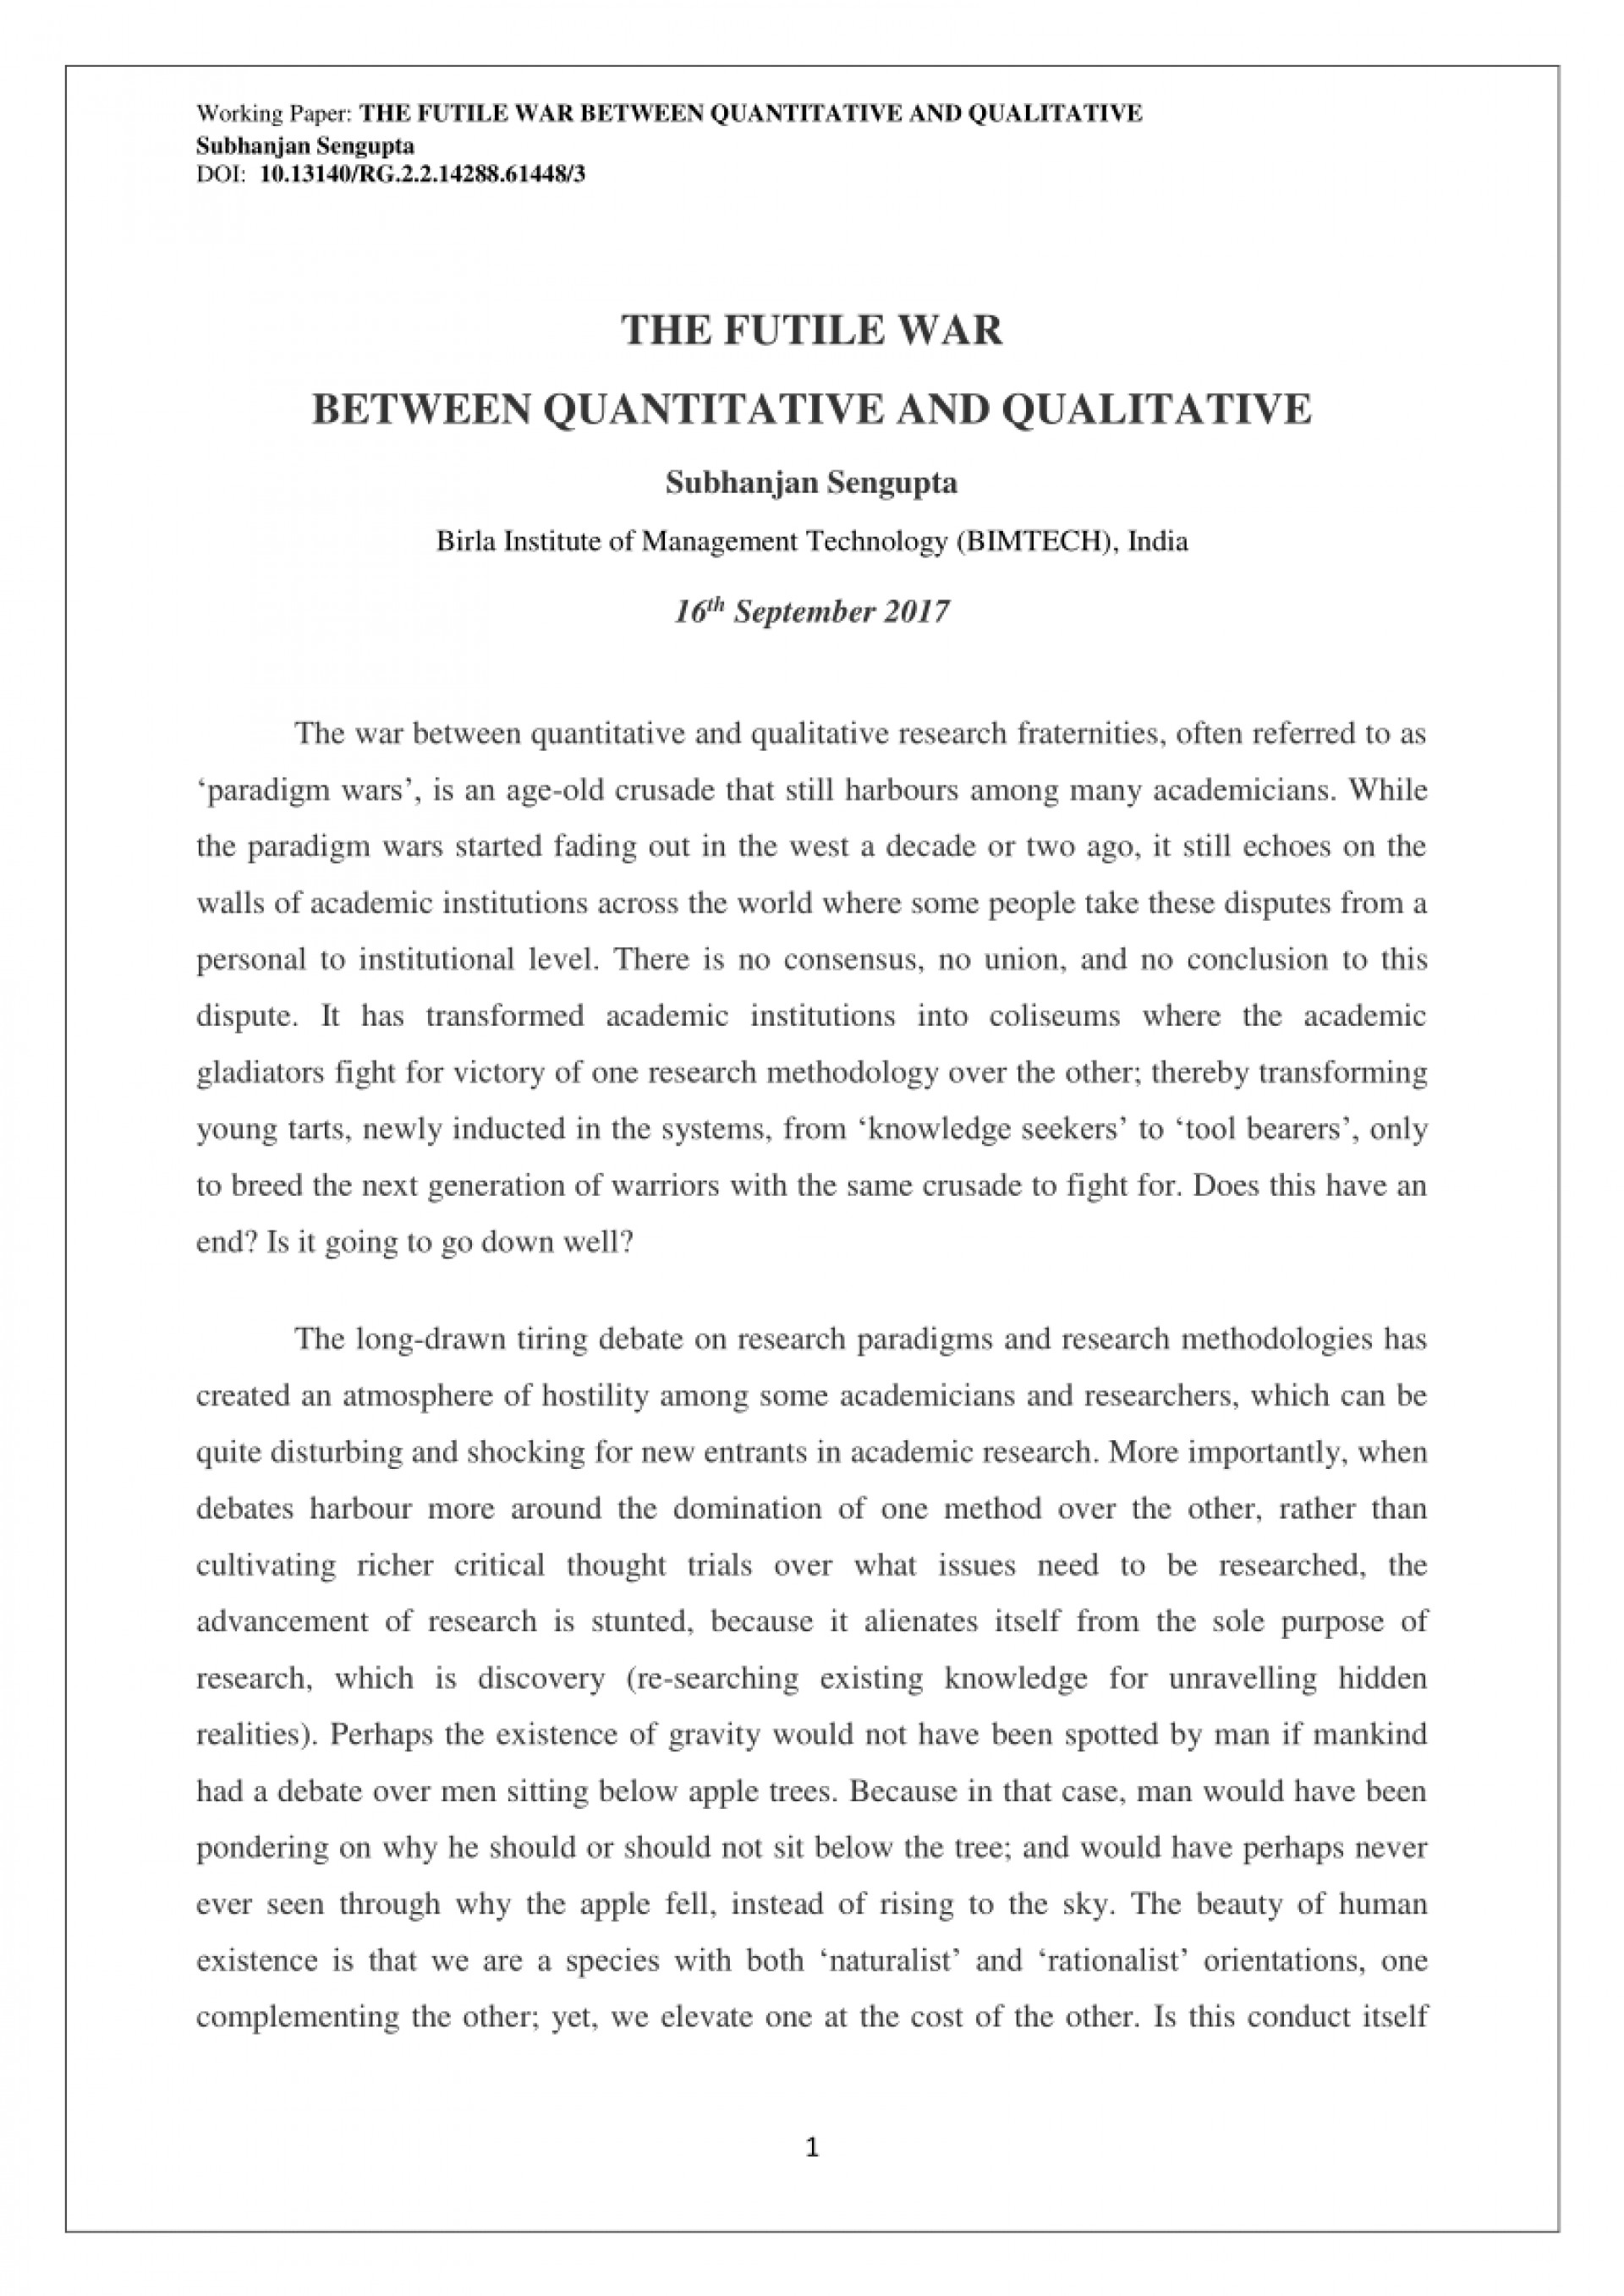 002 Example Of Hypothesis In Qualitative Research Paper Singular 1920